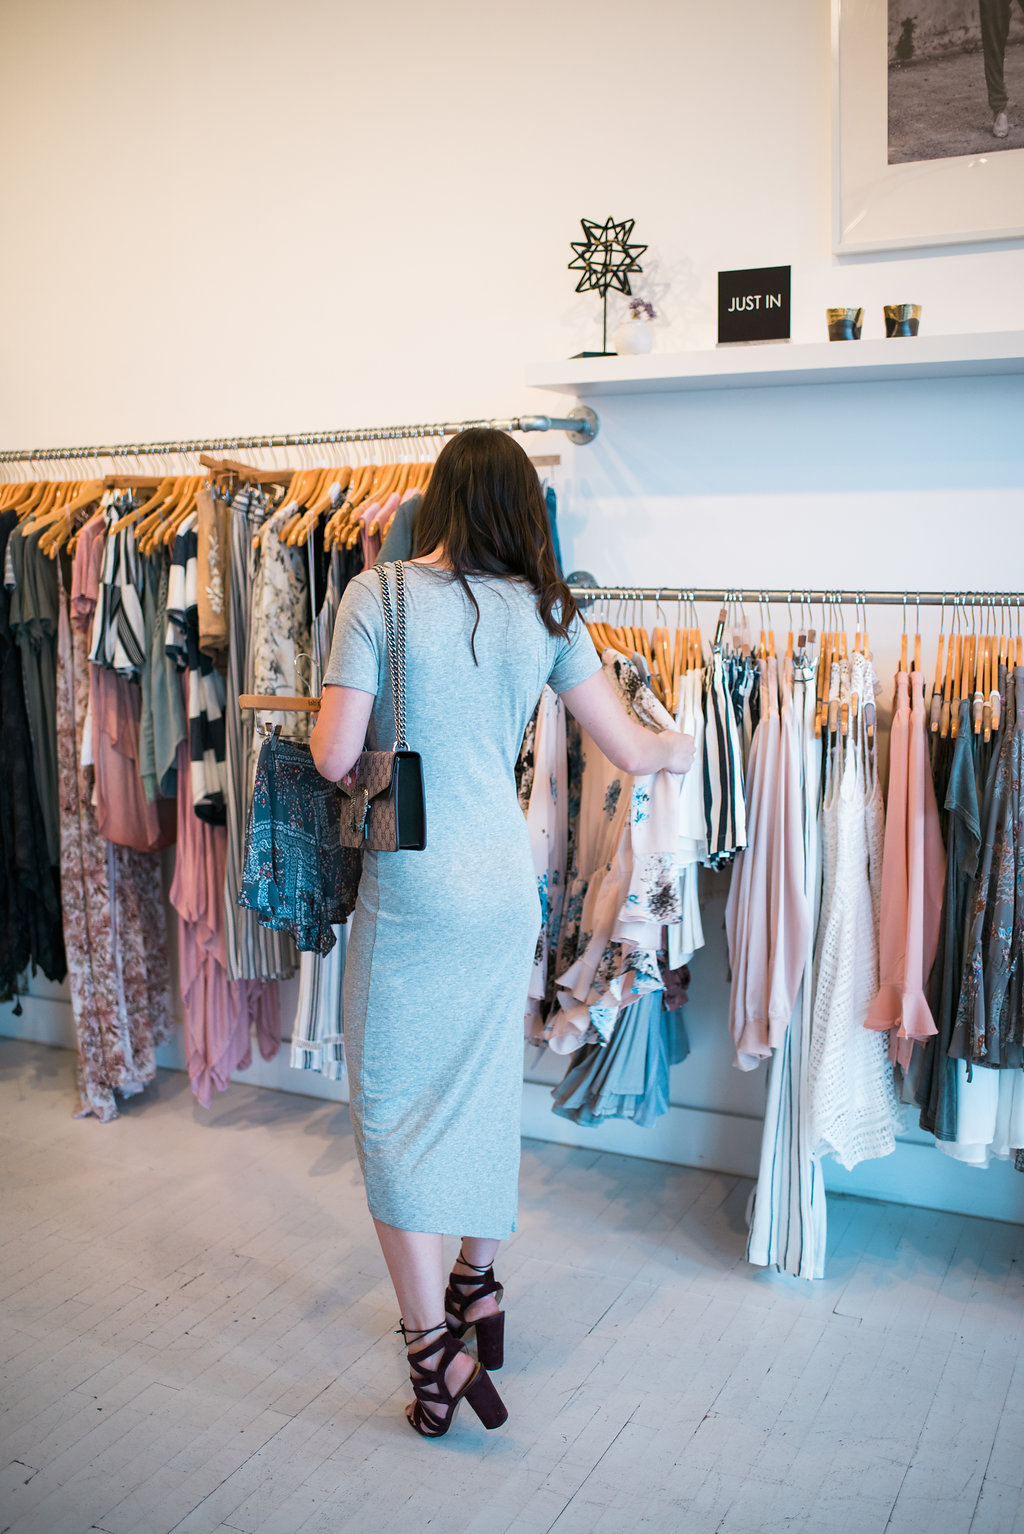 """<img src ="""" the-importance-of-friendship-support-and-other-reflections.jpg"""" alt ="""" style-collective-blogger-meetup-denver-fabrik-boutique-the-importance-of-friendship-sam-edelman-yardley"""">"""